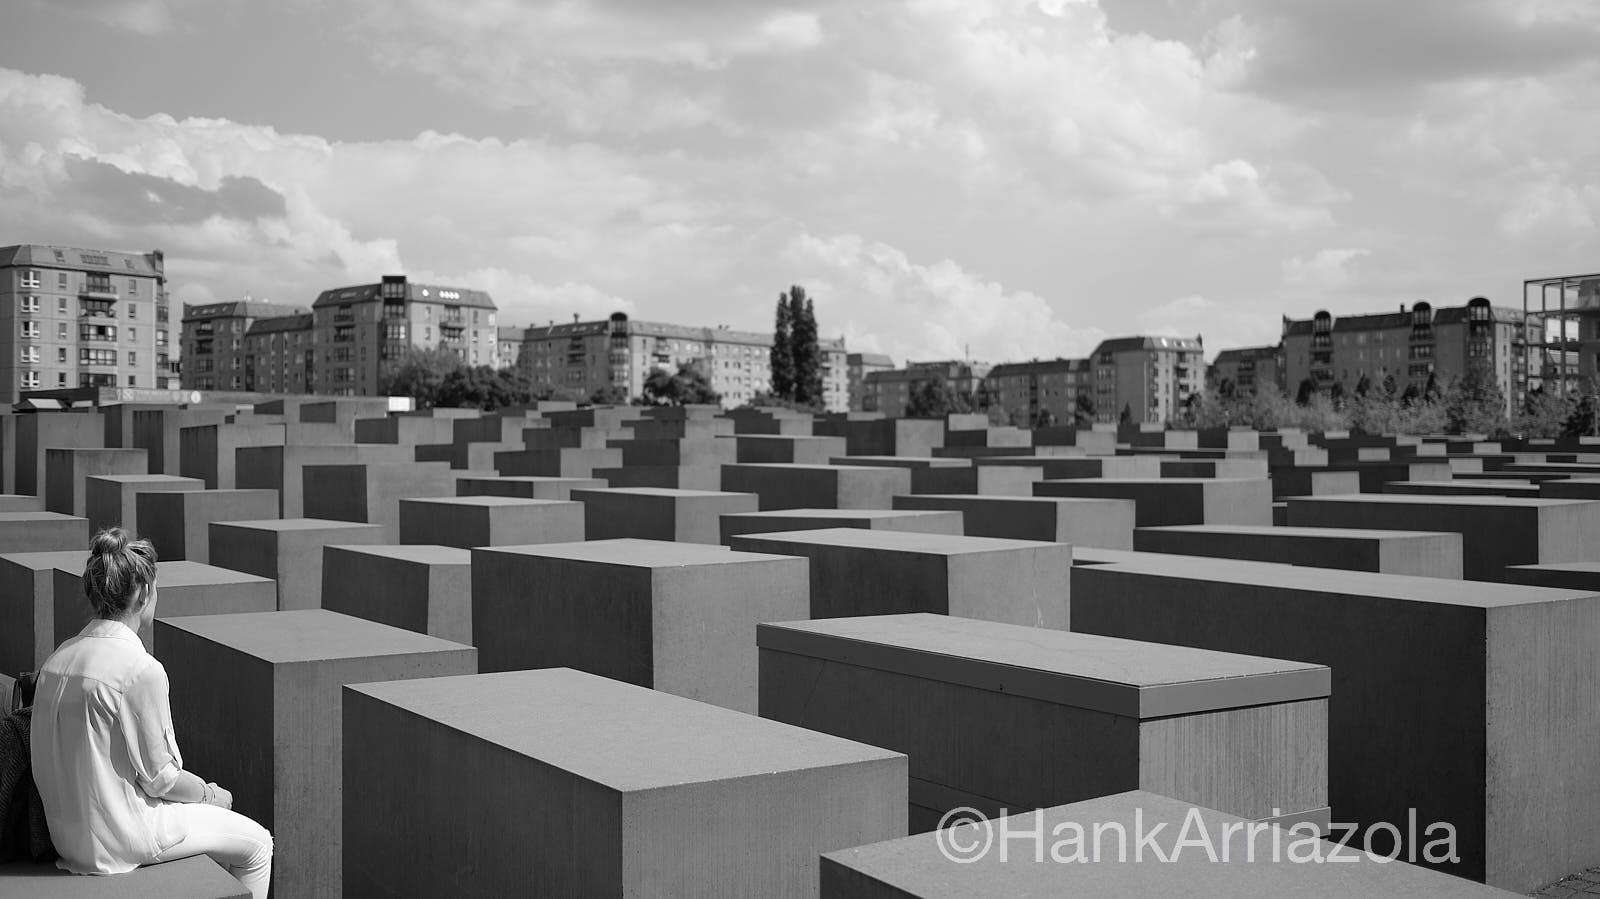 The Memorial to the Murdered Jews of Europe      there are 2711 concrete blocks of various sizes facing north to south on 4. acres